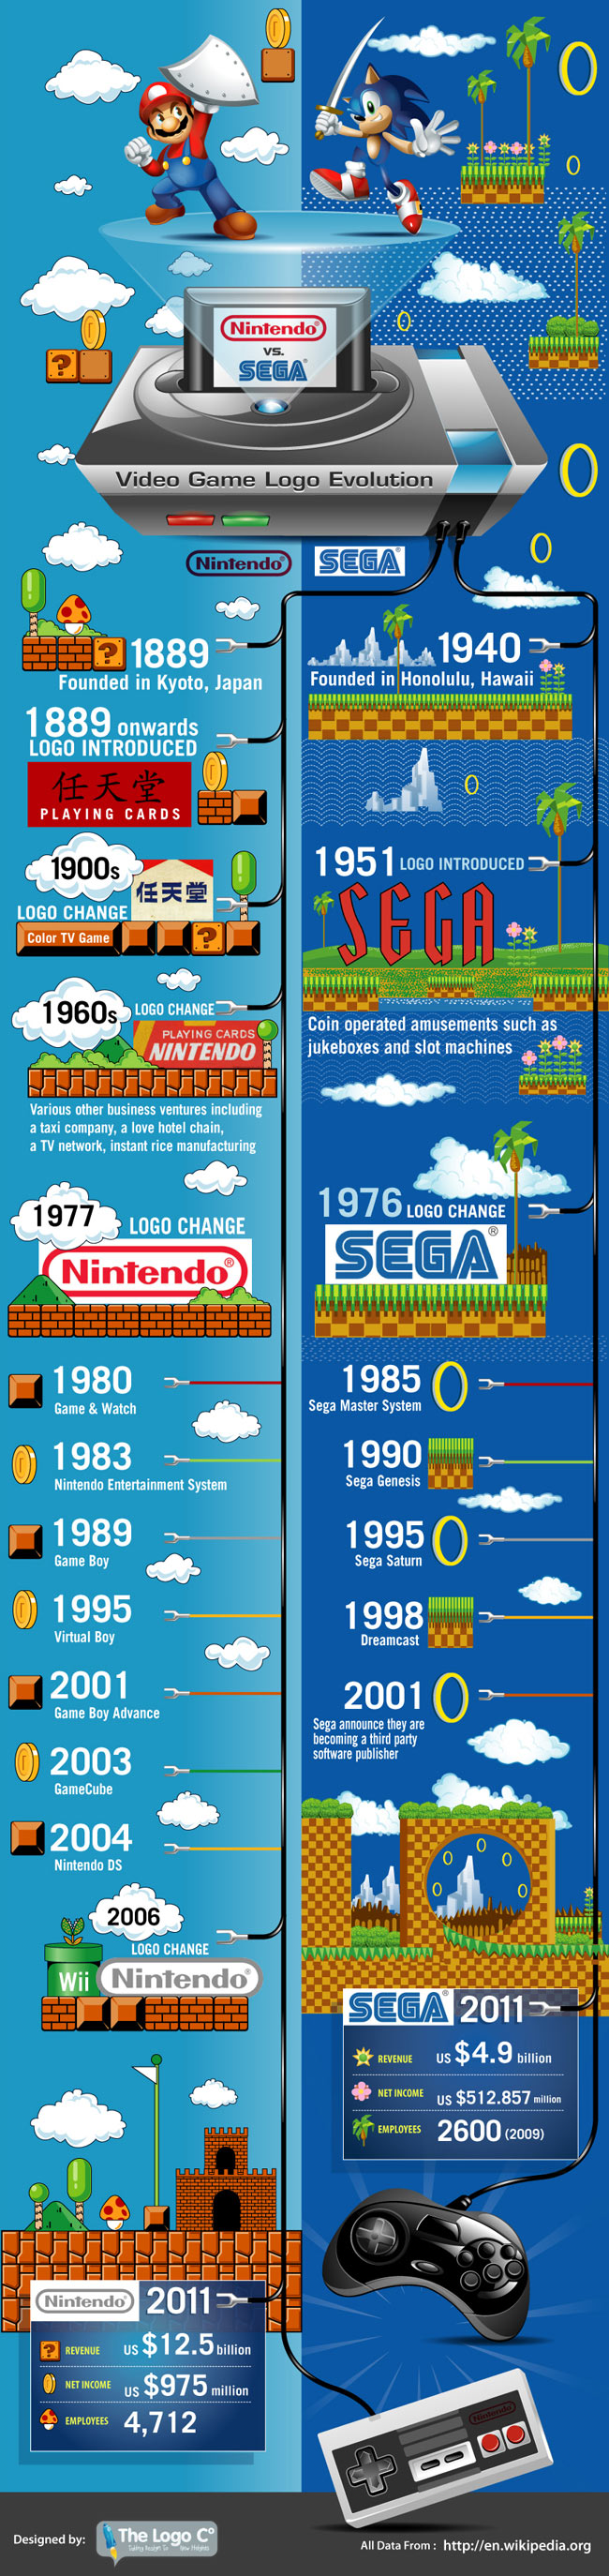 Infographic: Nintendo vs Sega: Video Game Logo Evolution